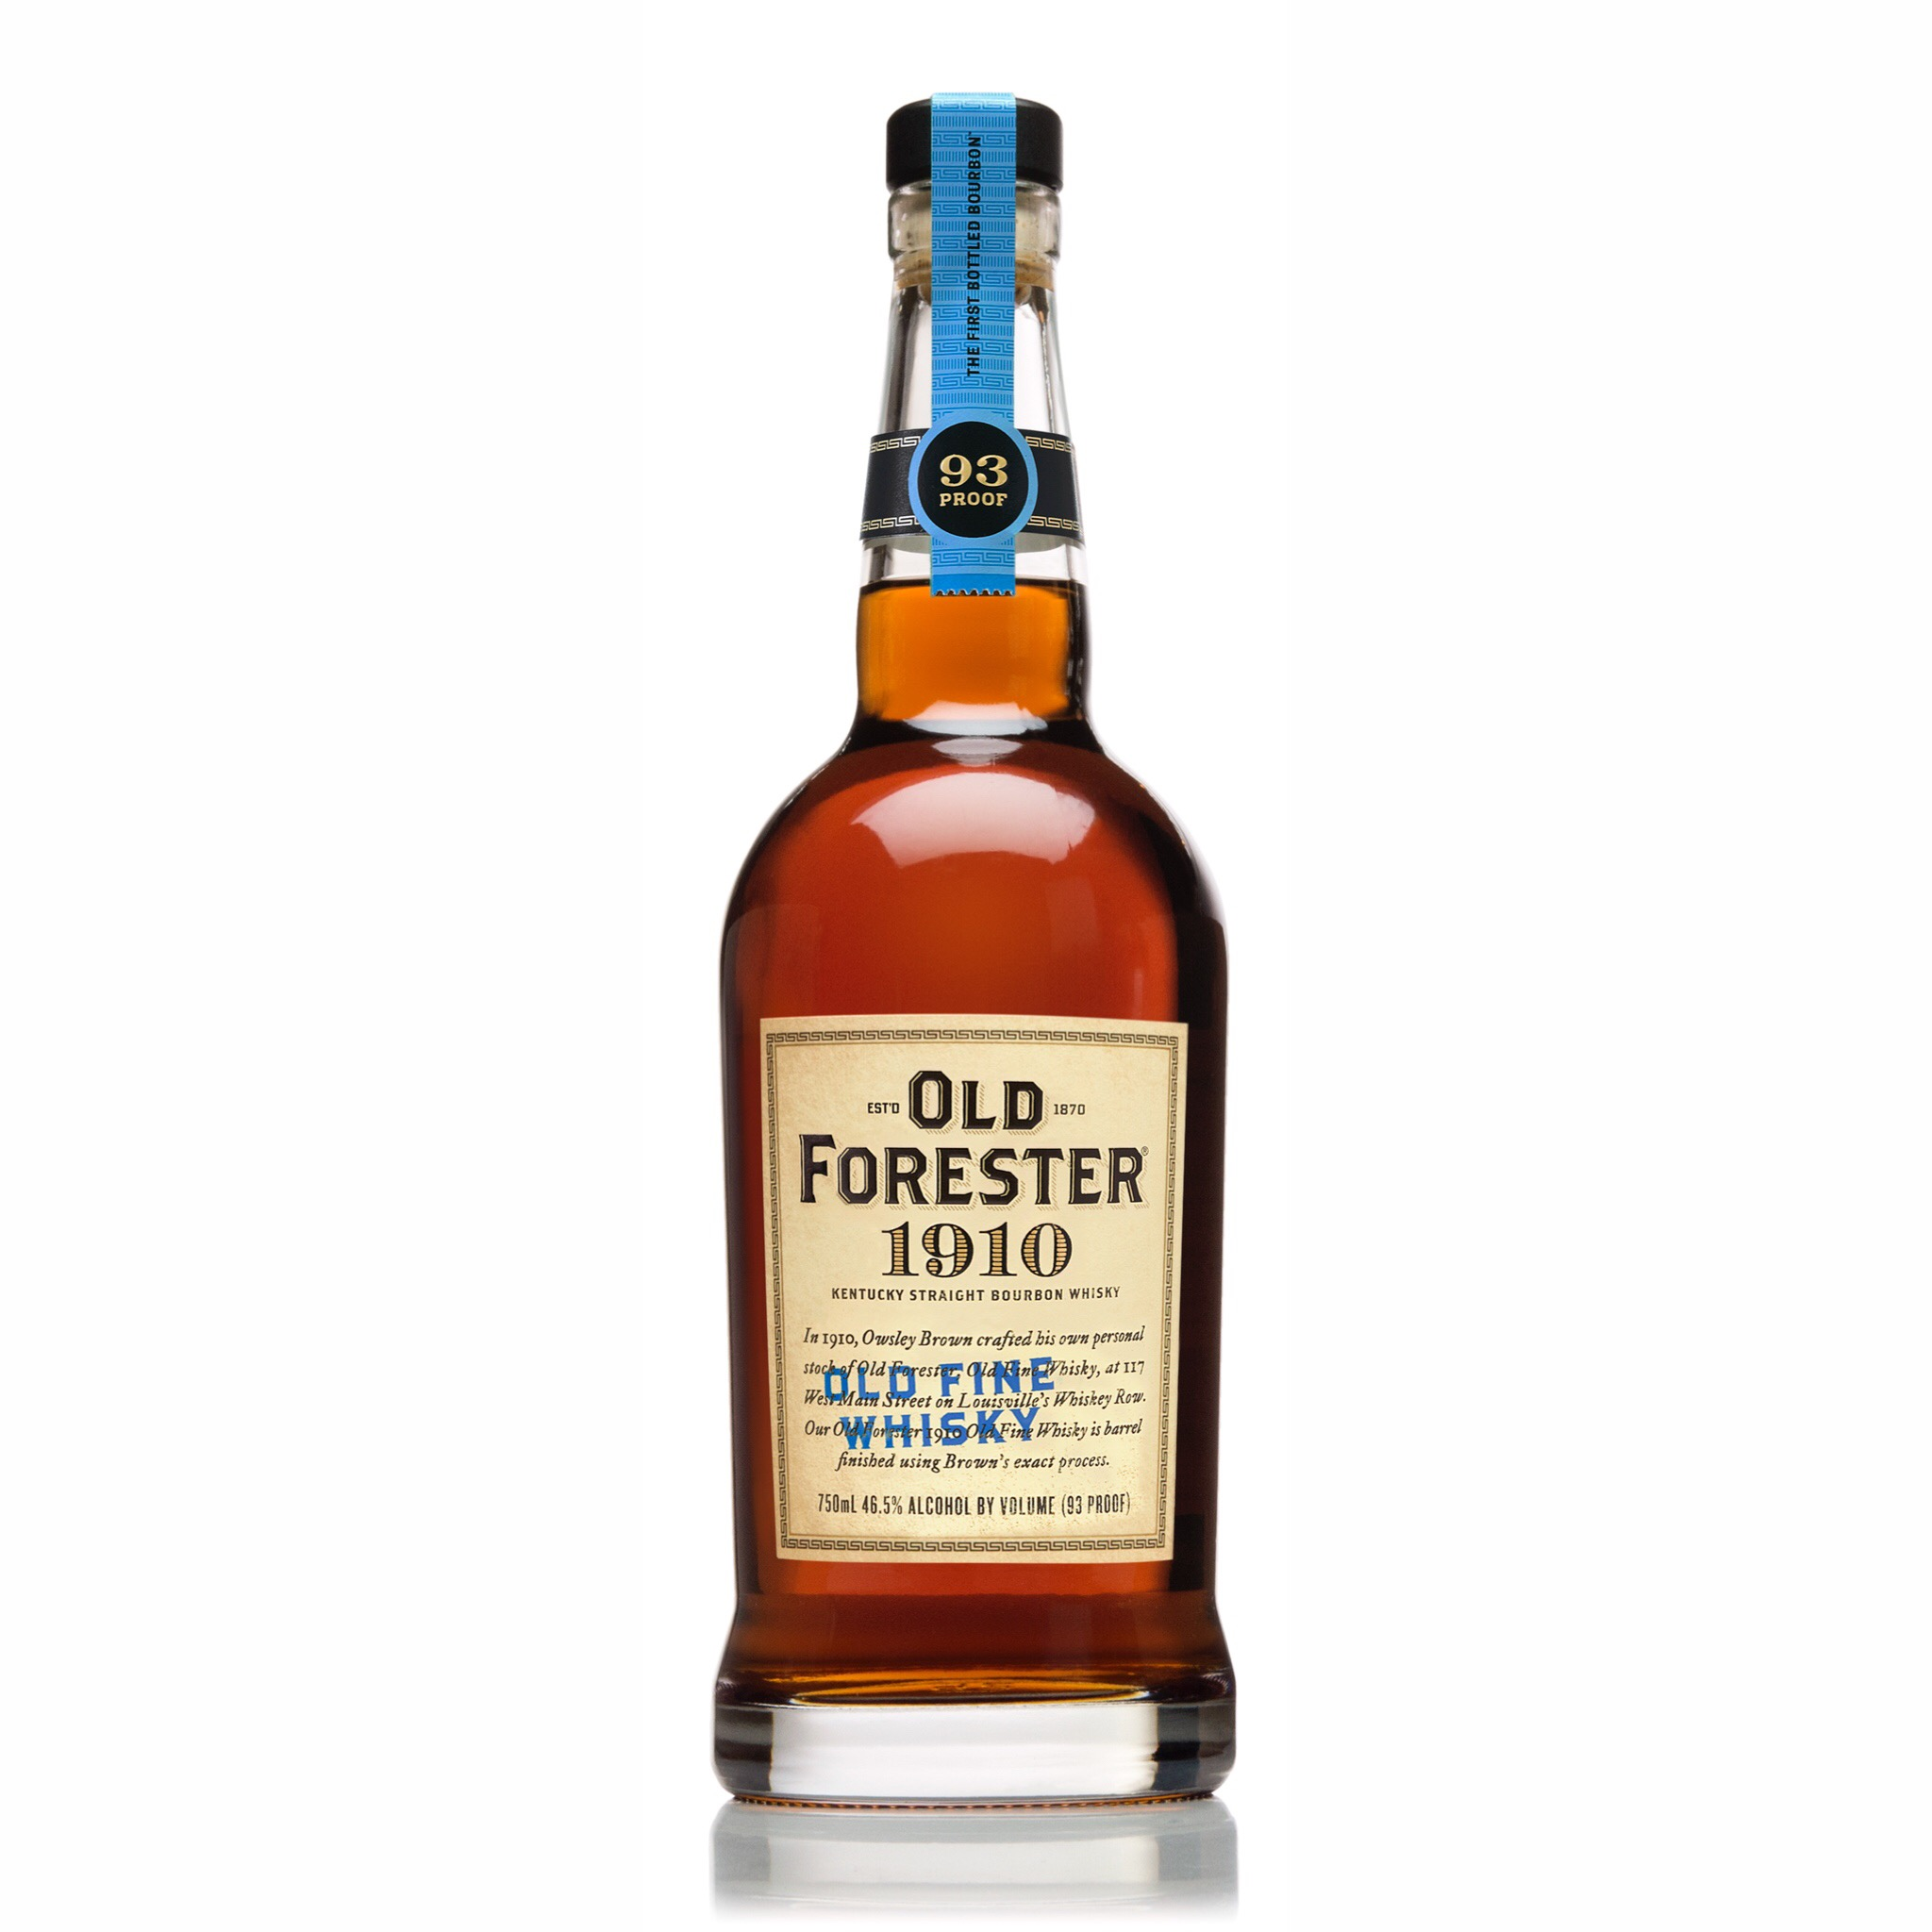 Dating old forester bottles and more